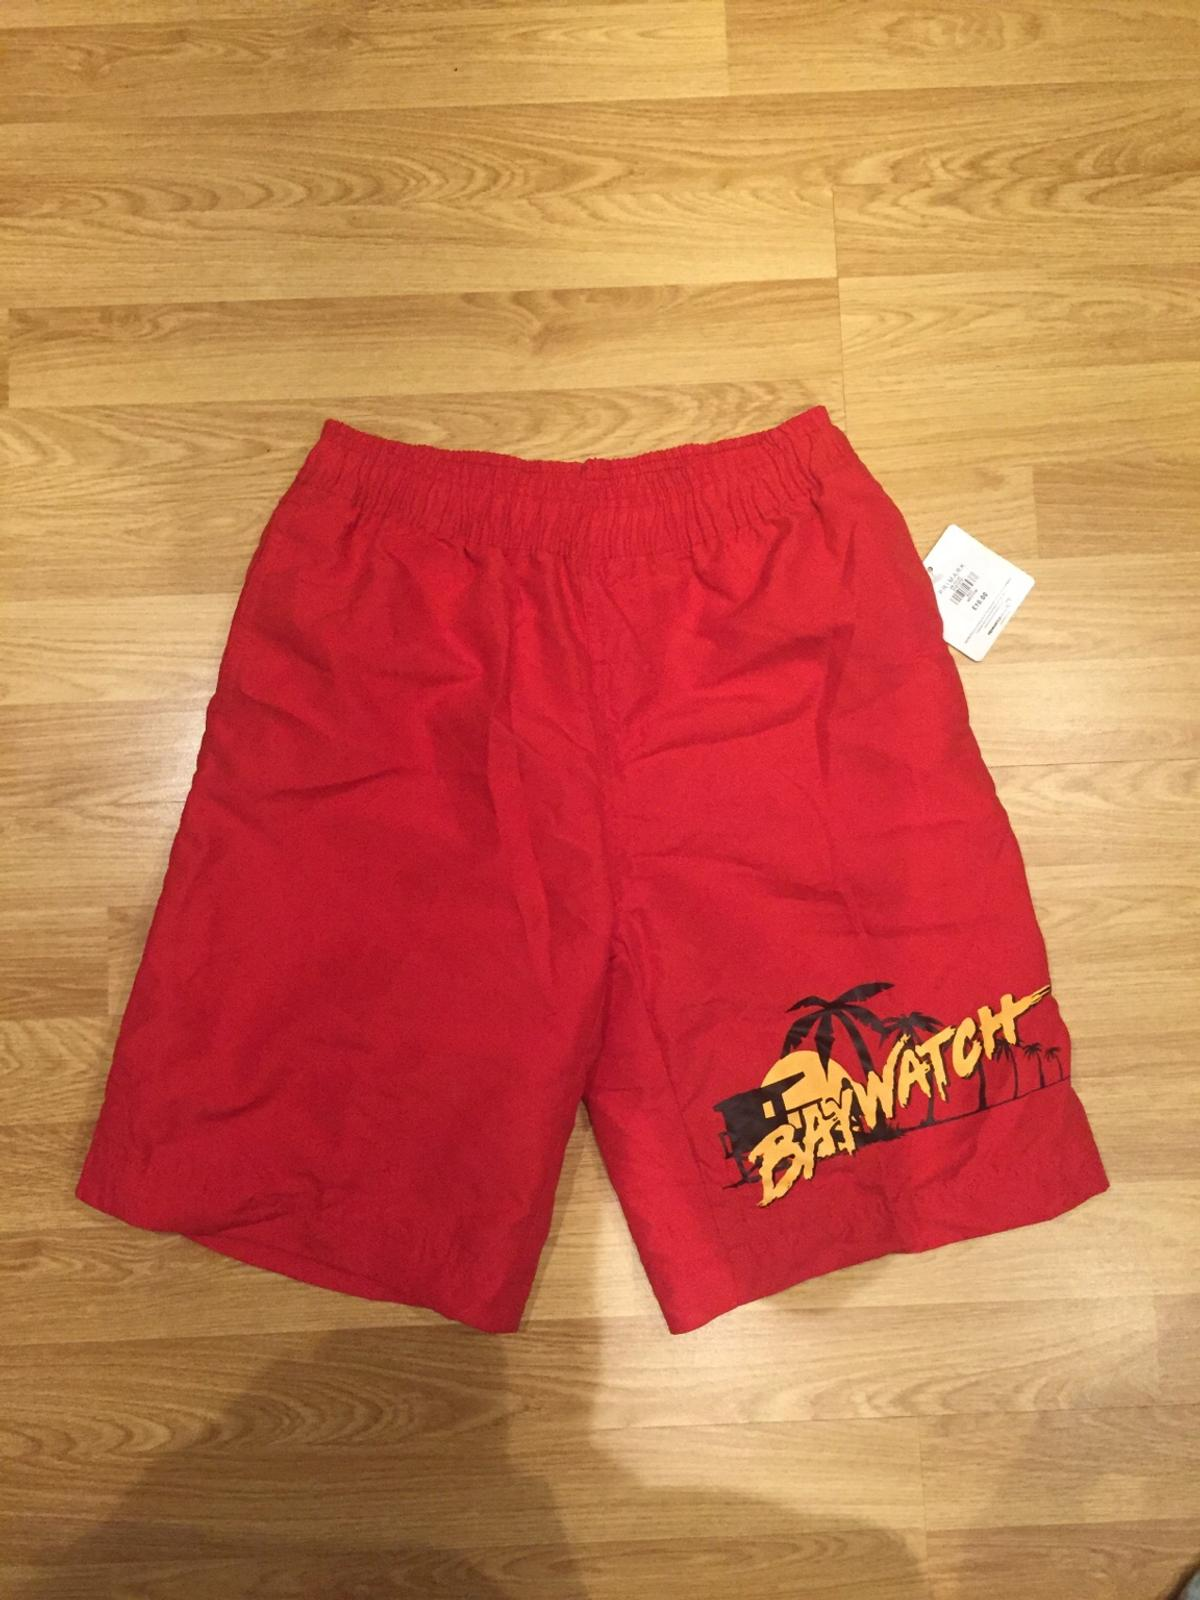 4fa4232730 Mens baywatch lifeguard shorts (M) in Chetwynd Aston for £5.00 for ...